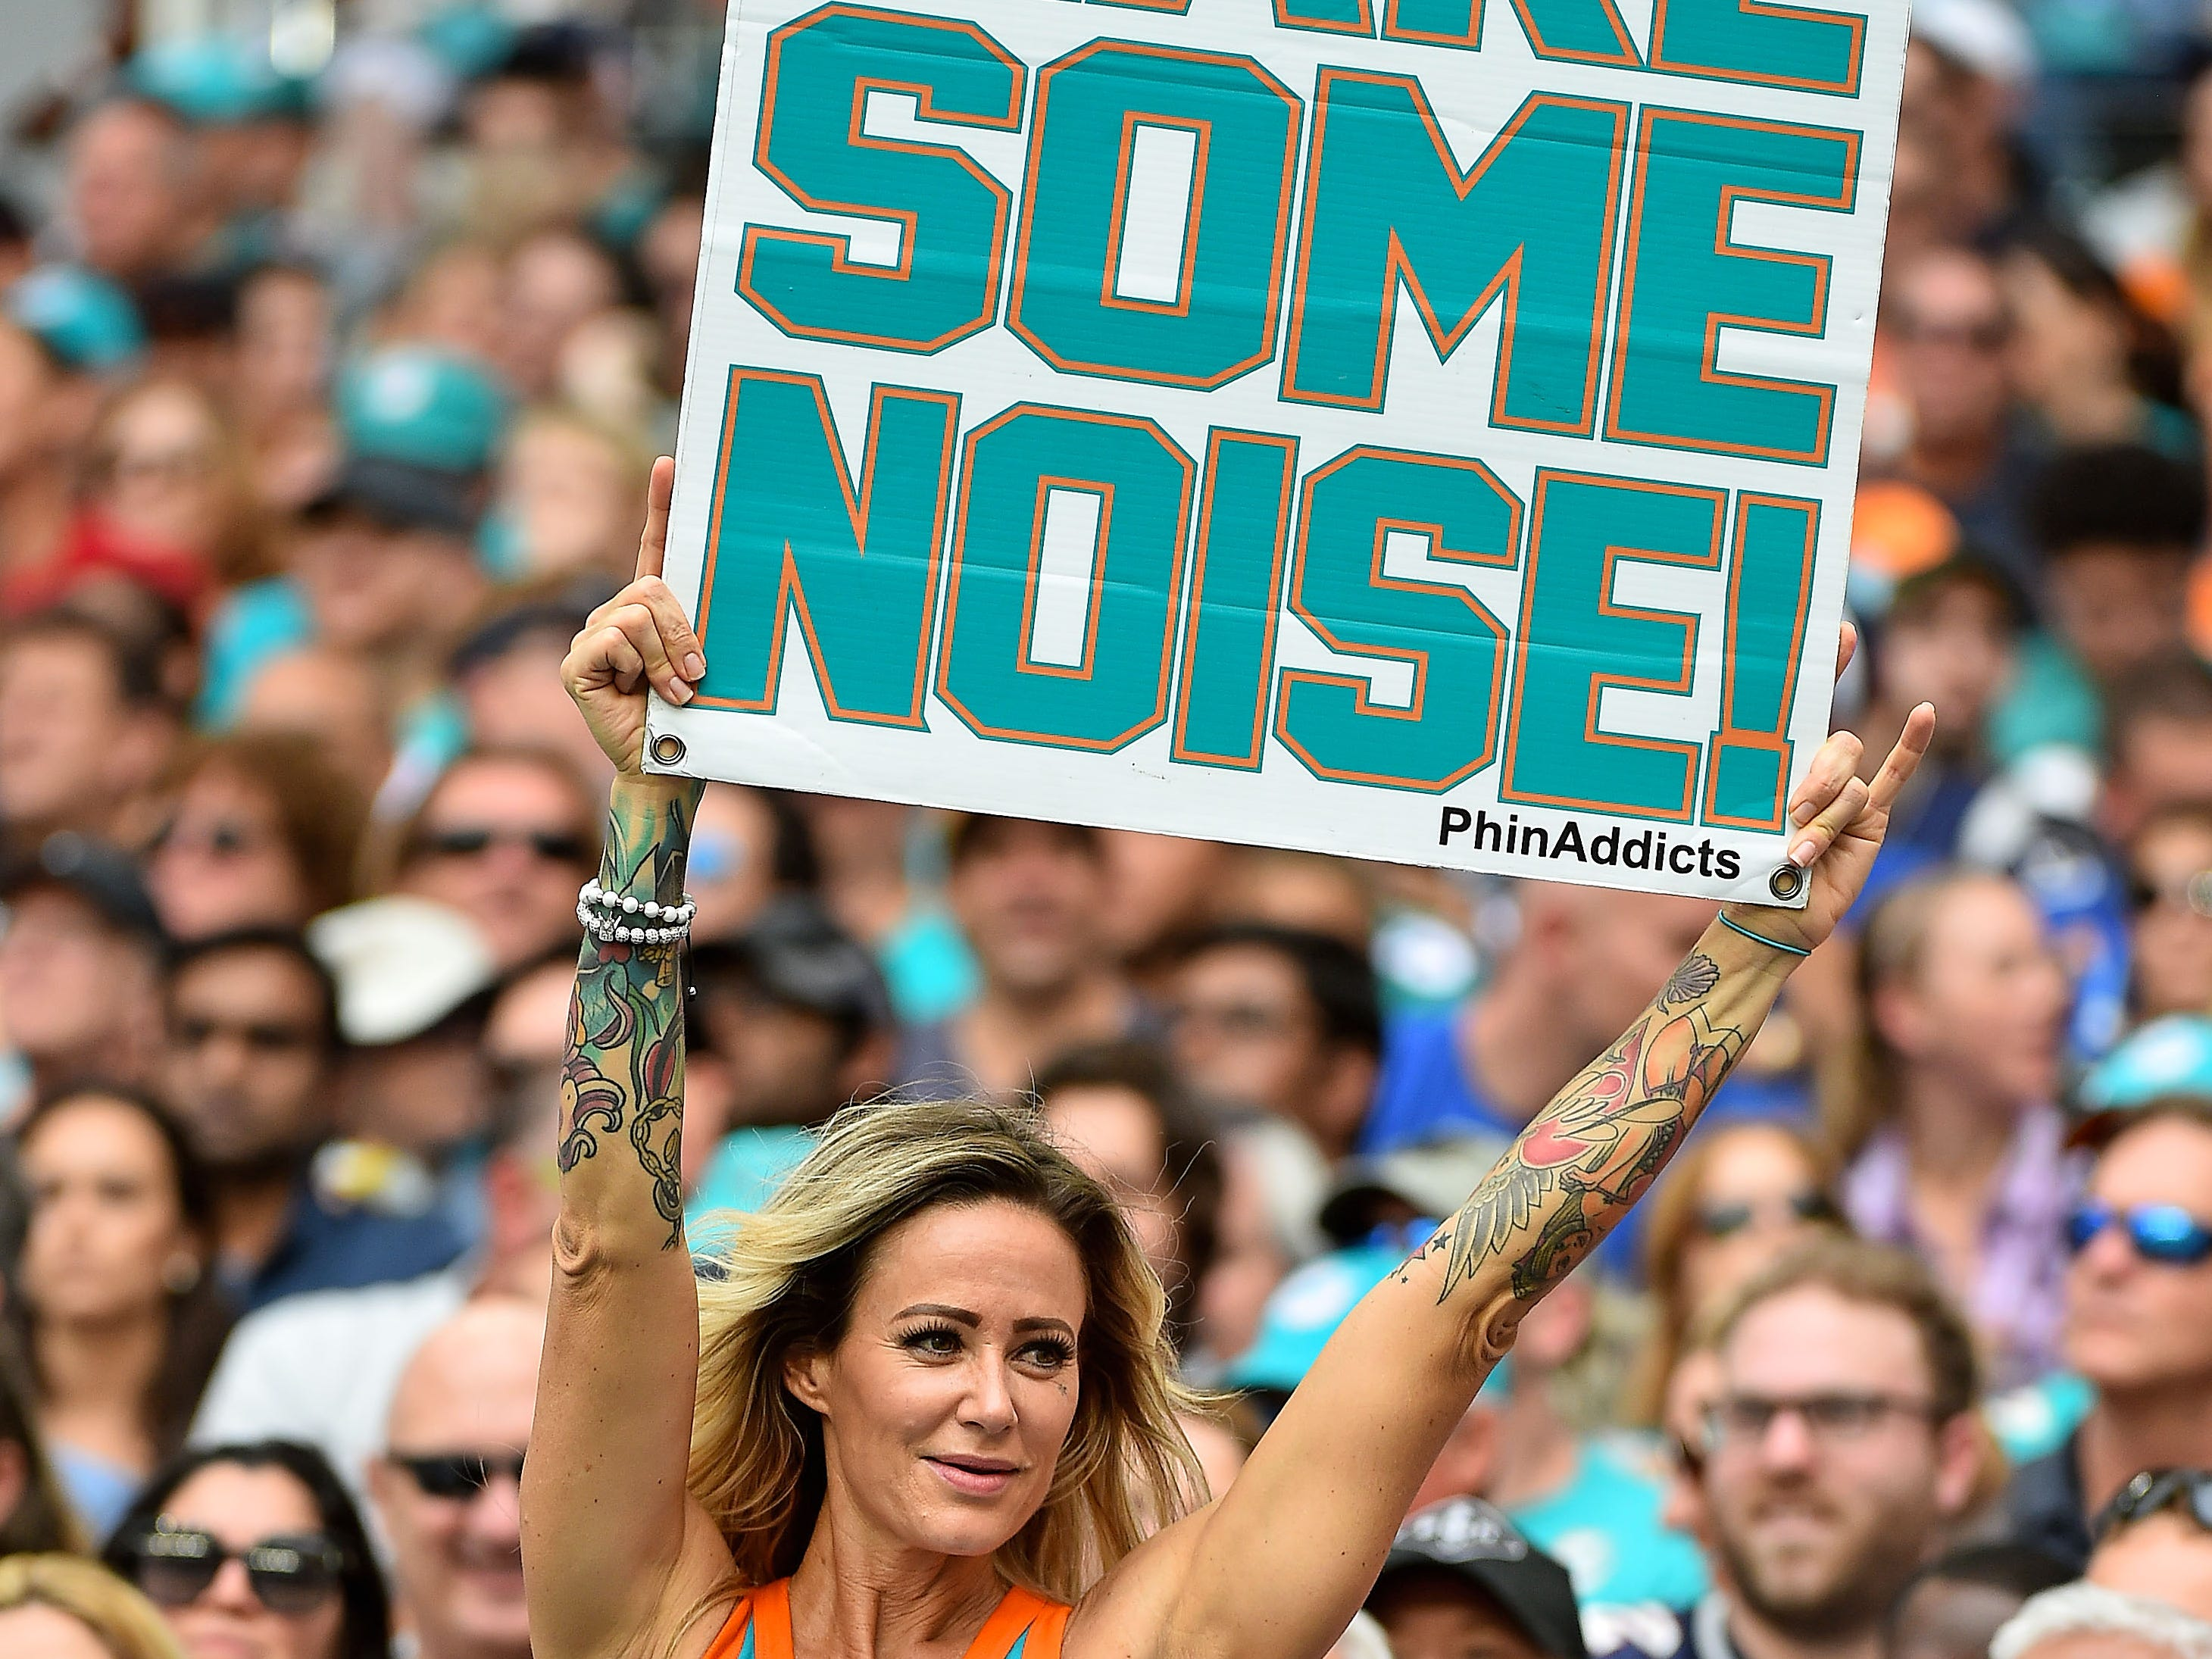 A Miami Dolphin fan cheers during the first half between the Miami Dolphins and the New England Patriots at Hard Rock Stadium.